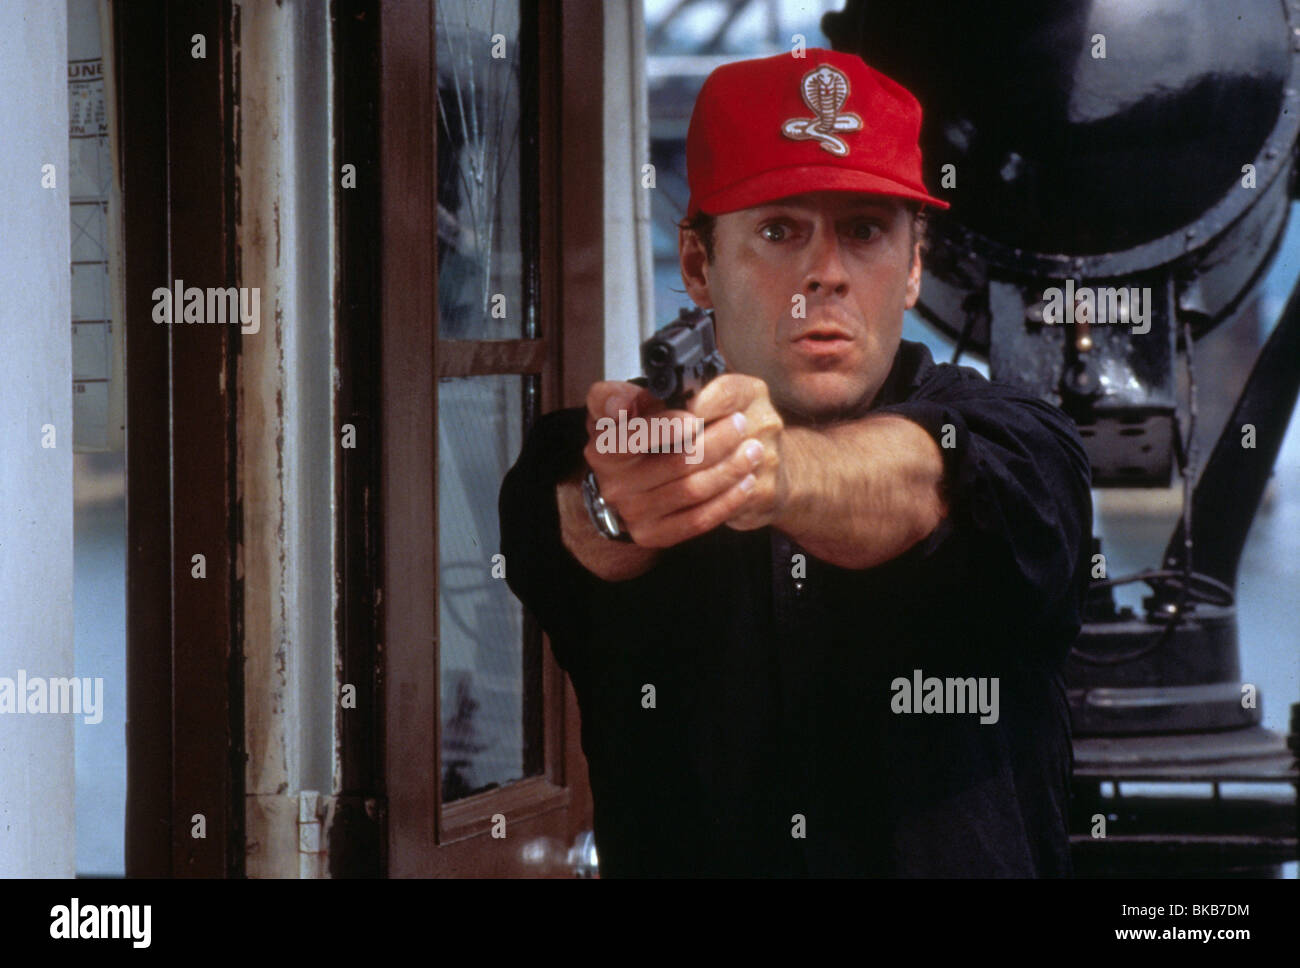 Striking distance Year : 1993 Director : Rowdy Herrington Bruce Willis - Stock Image